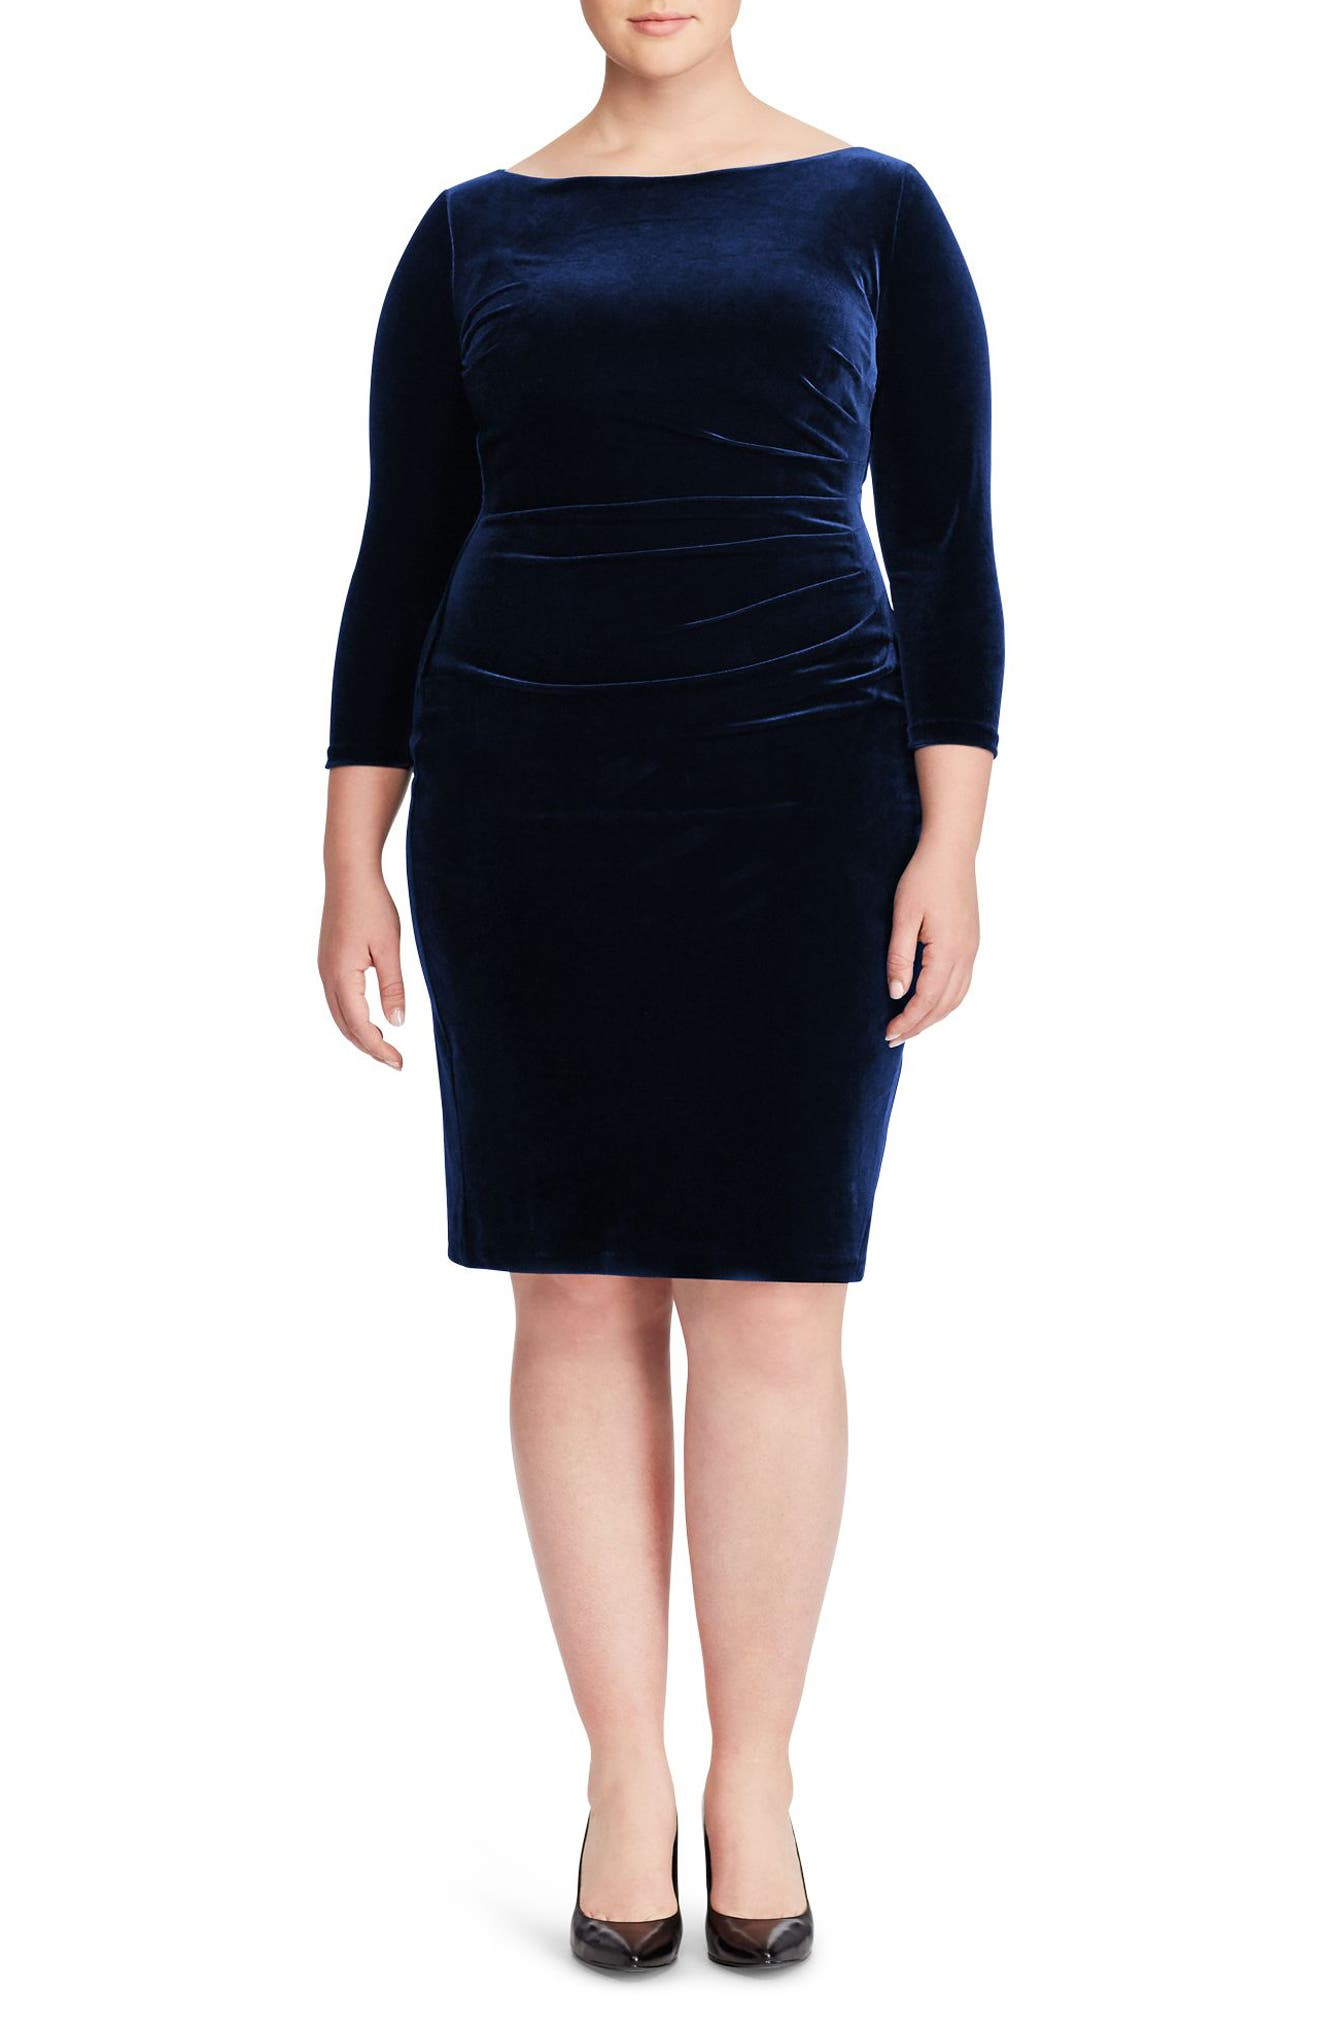 Alternate Image 1 Selected - Ralph Lauren Stretch Velvet Sheath Dress (Plus Size)